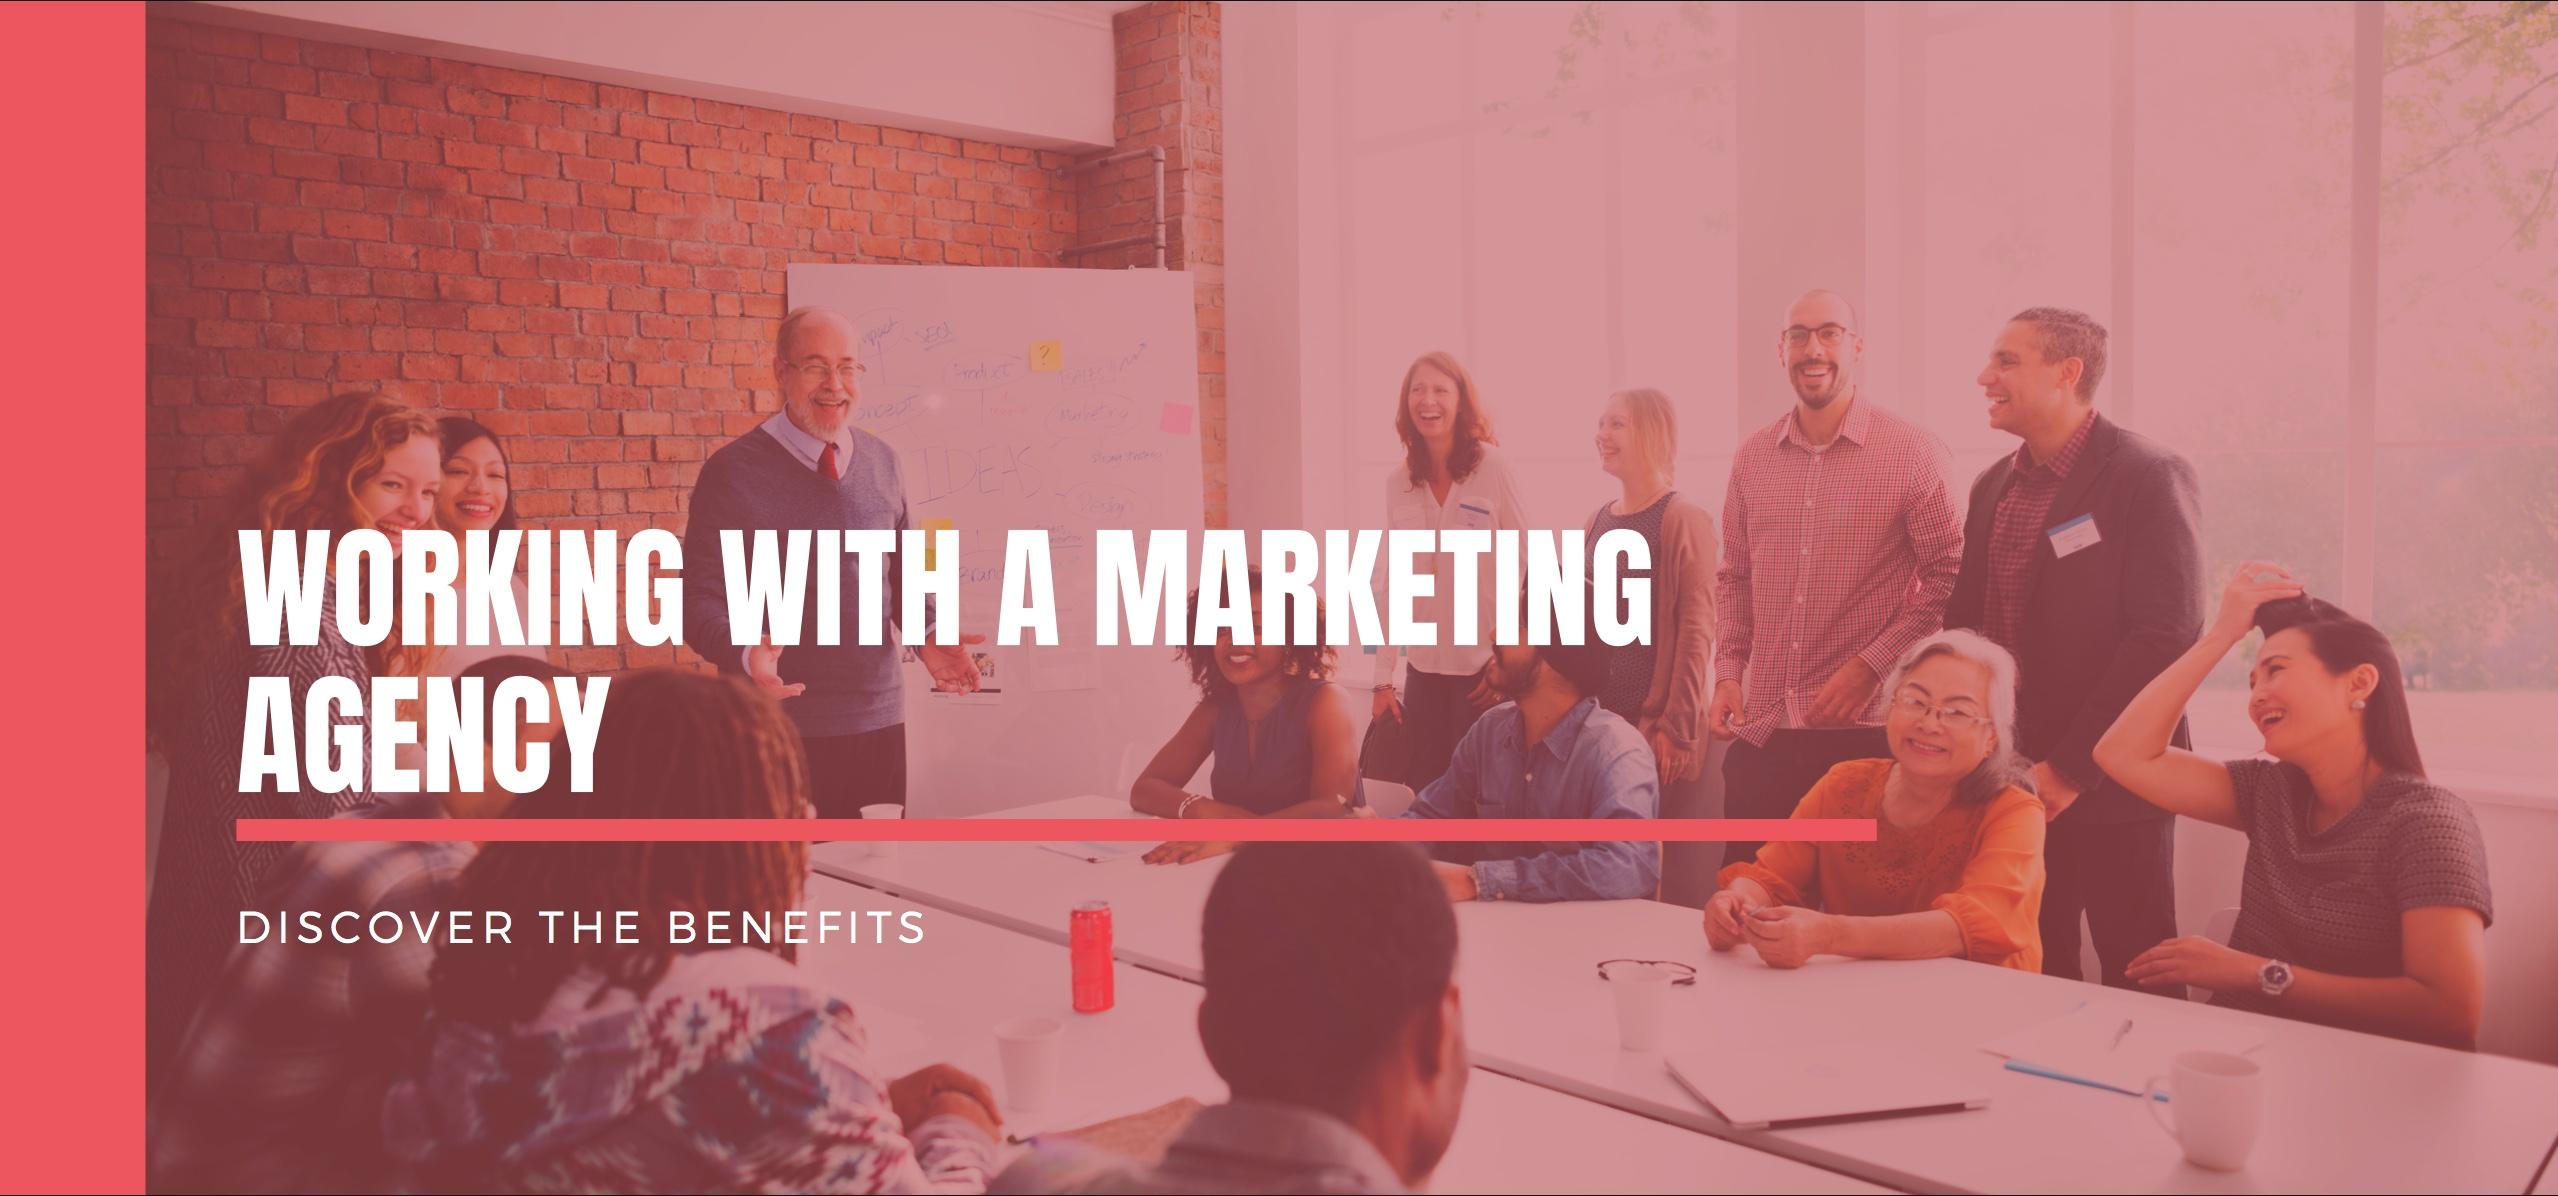 Working-With-A-Marketing-Agency